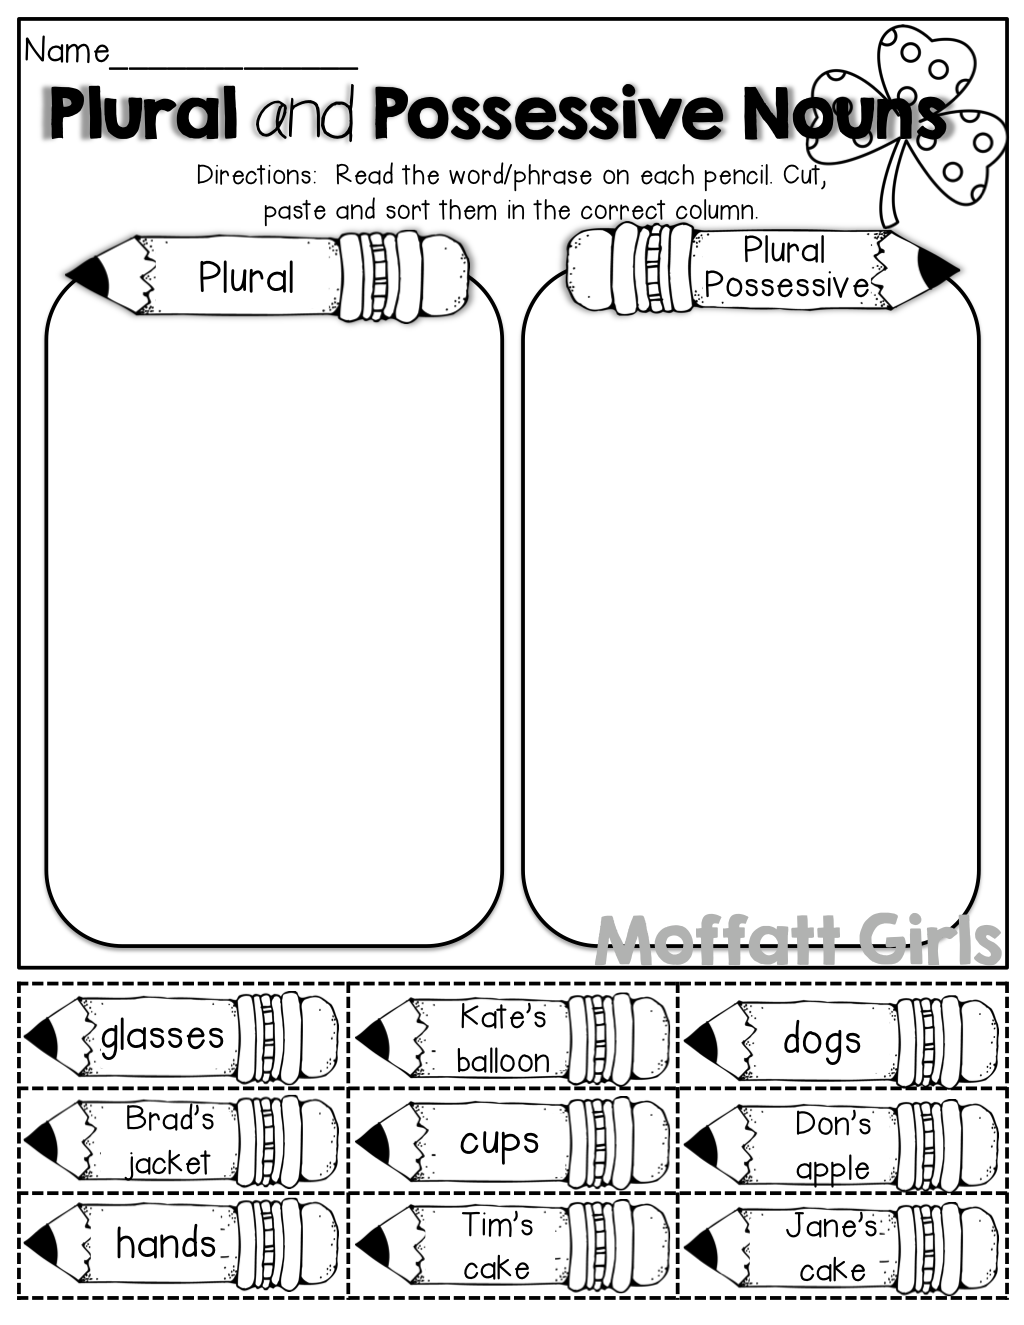 small resolution of French 1 Possessive Nouns Worksheet   Printable Worksheets and Activities  for Teachers